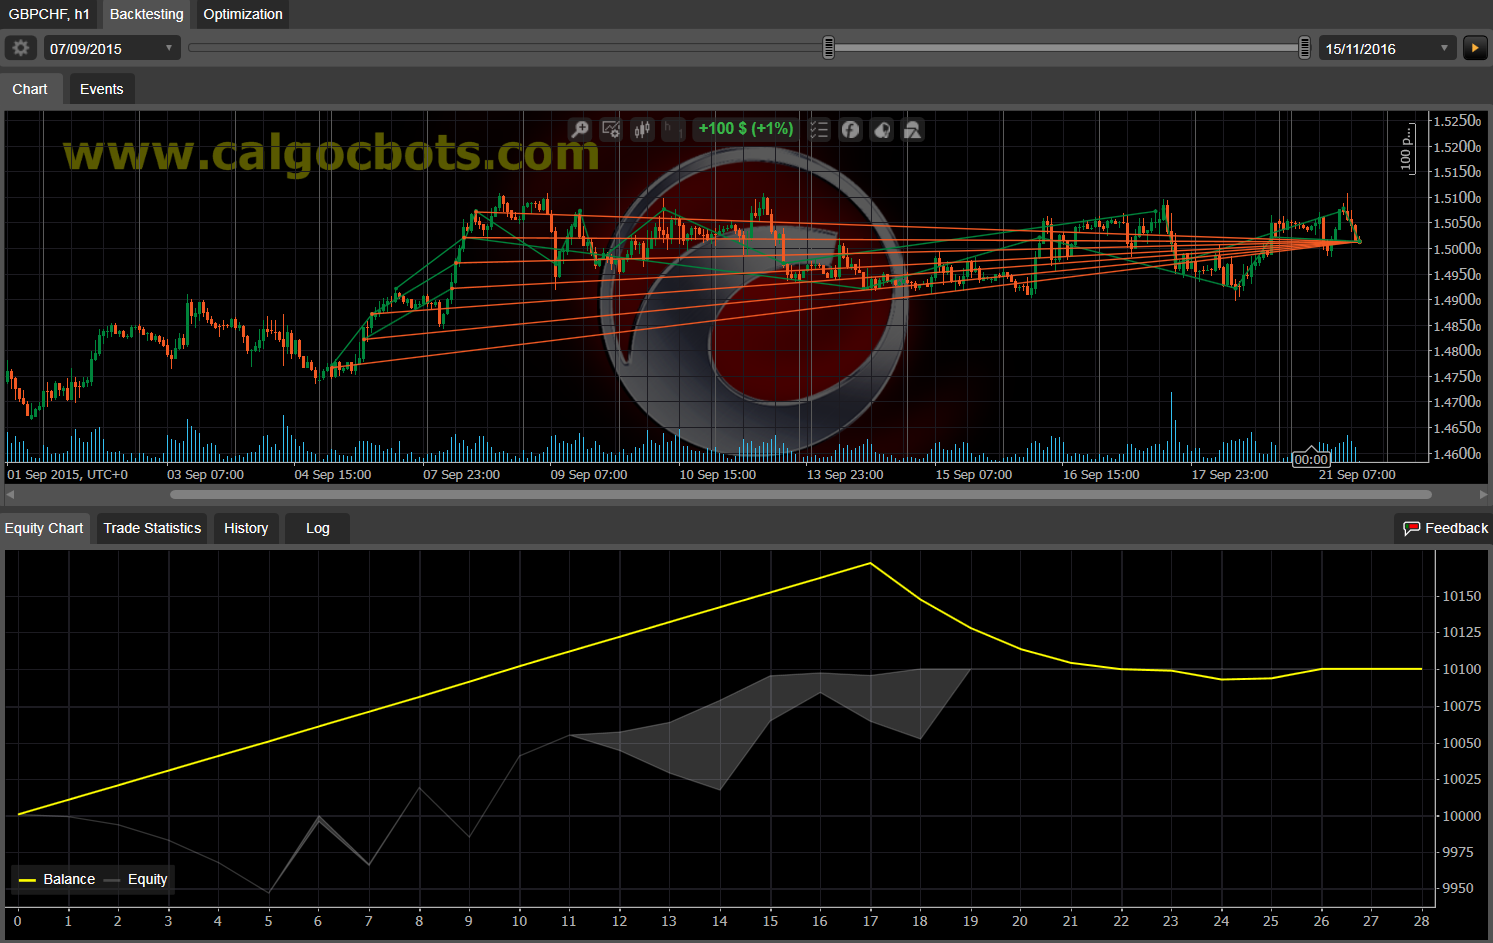 Dual Grid Hedge GBP CHF 1h cAlgo cBots cTrader 100 50 100 - 02